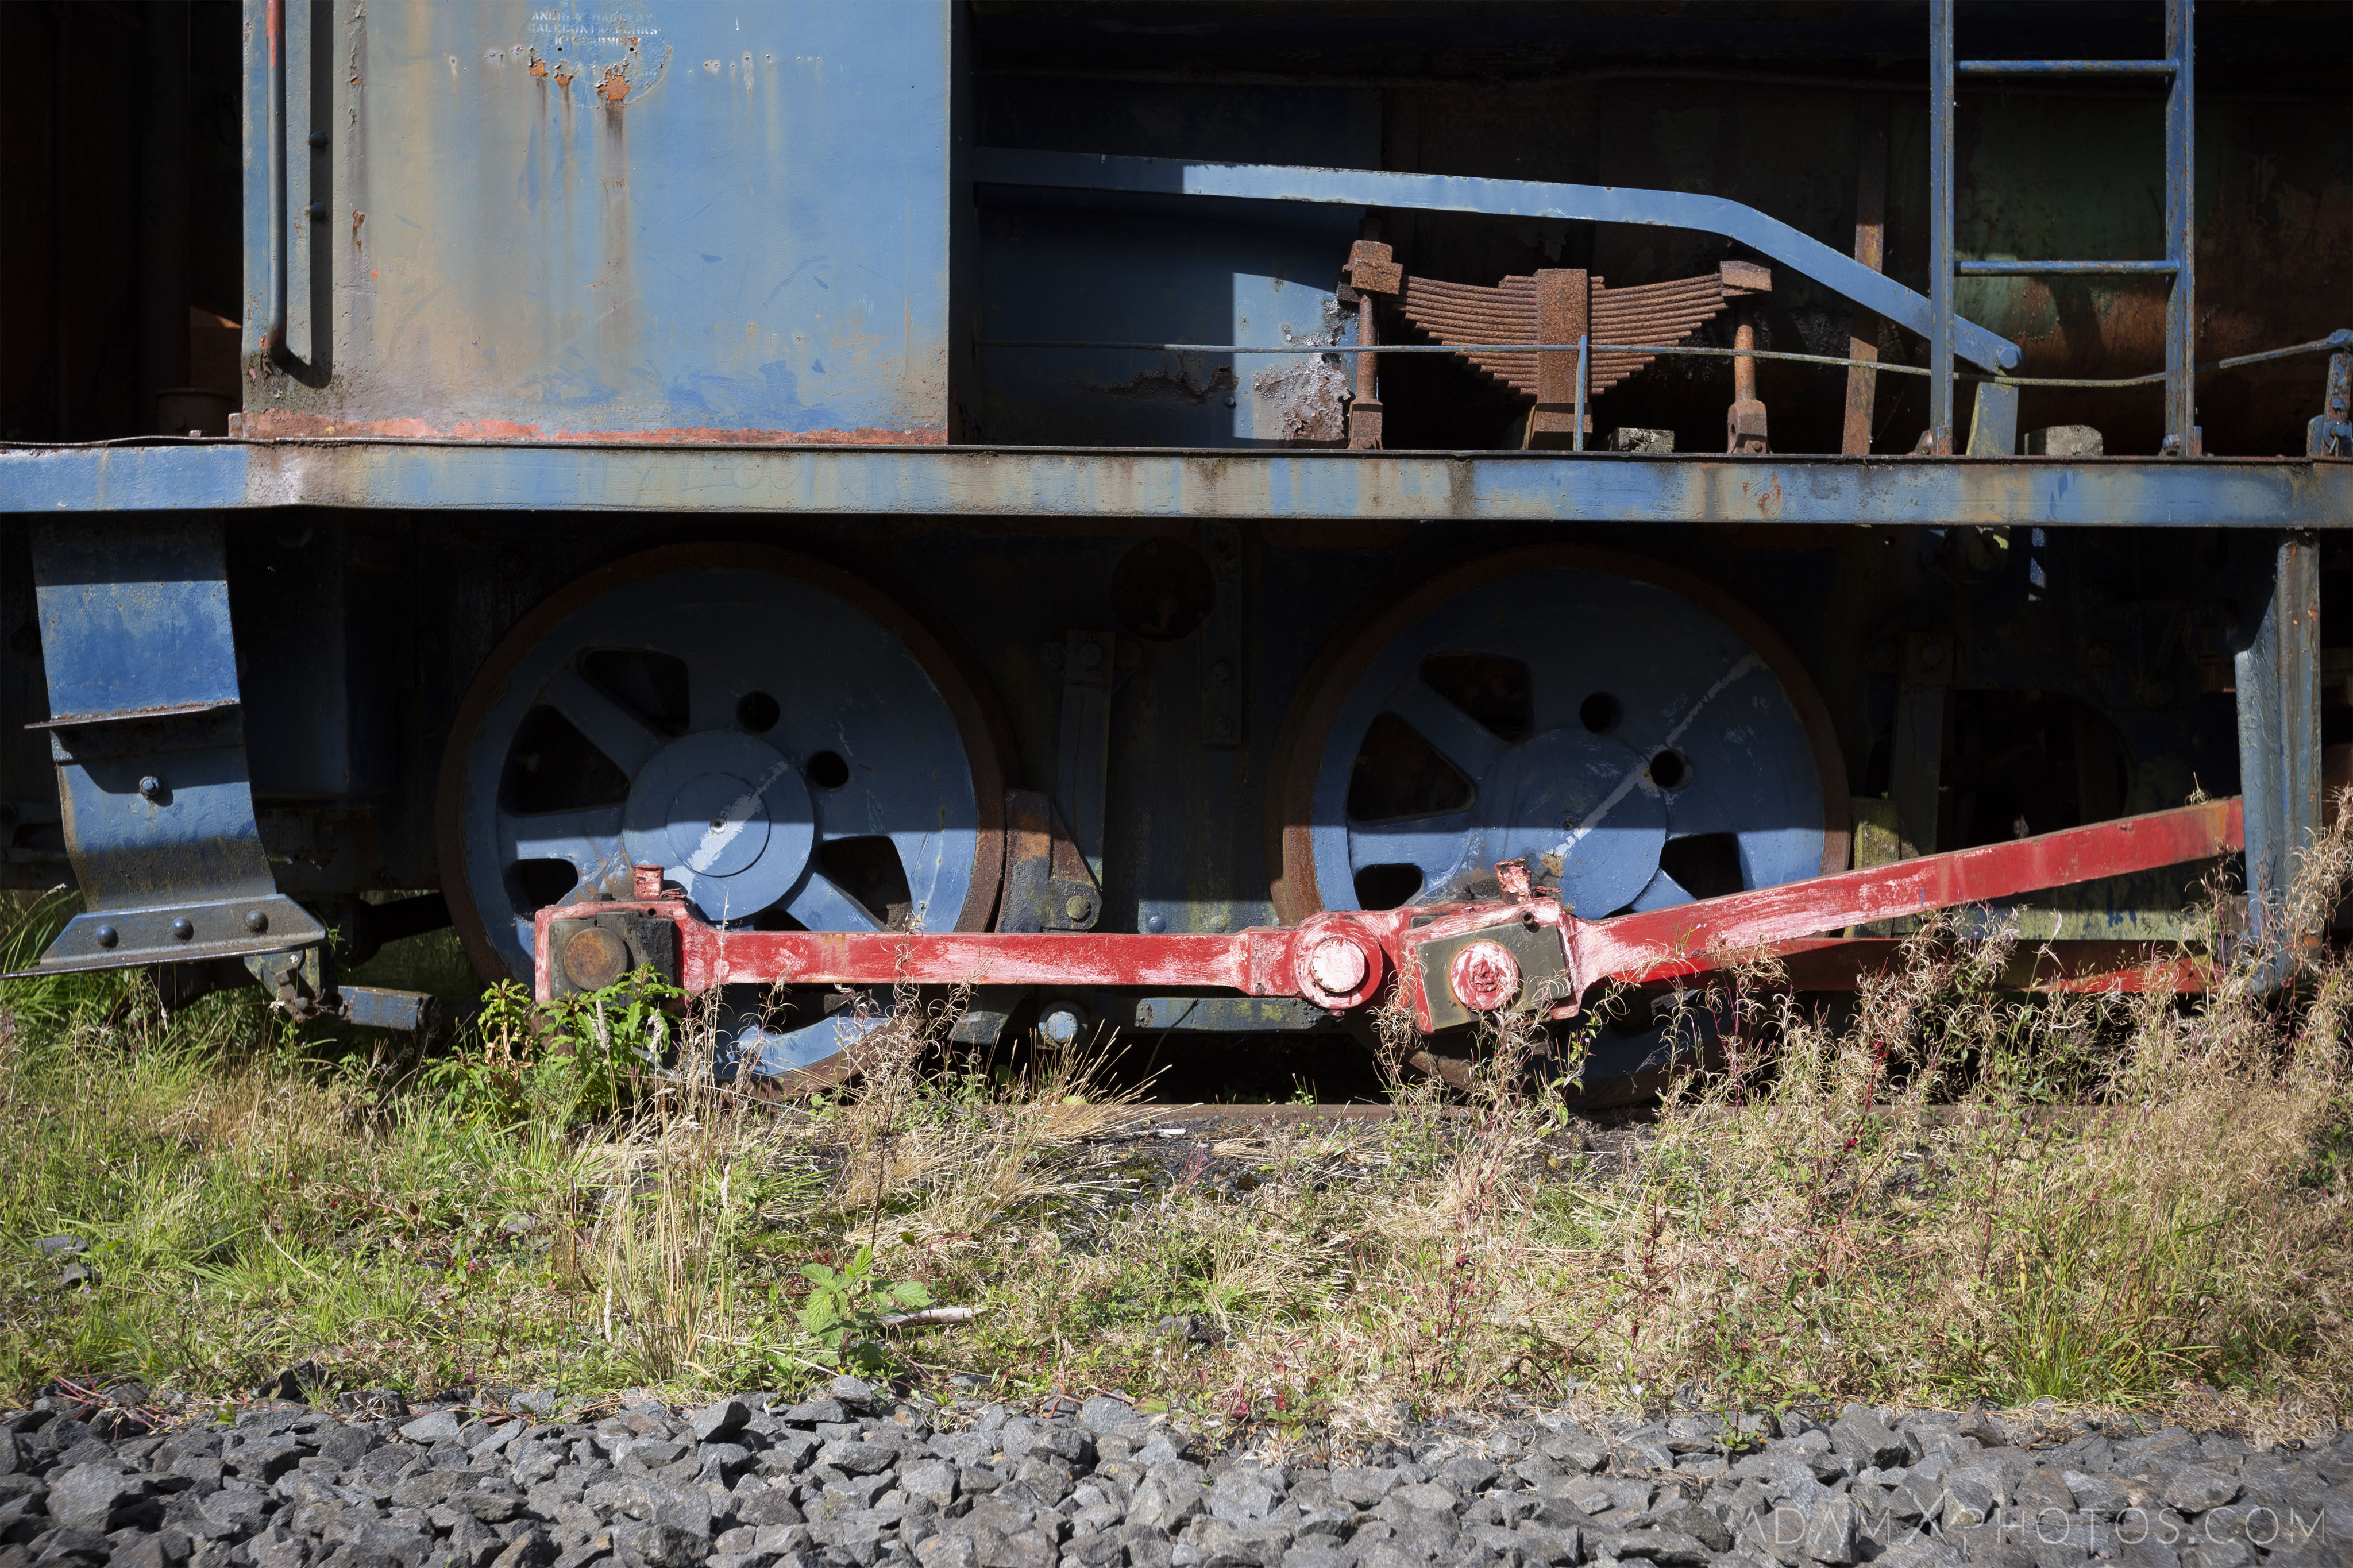 train wheels detail Abandoned Trains Waterside Dunaskin Adam X Urbex Urban Exploration Access 2018 Abandoned decay lost forgotten derelict location creepy haunting eerie